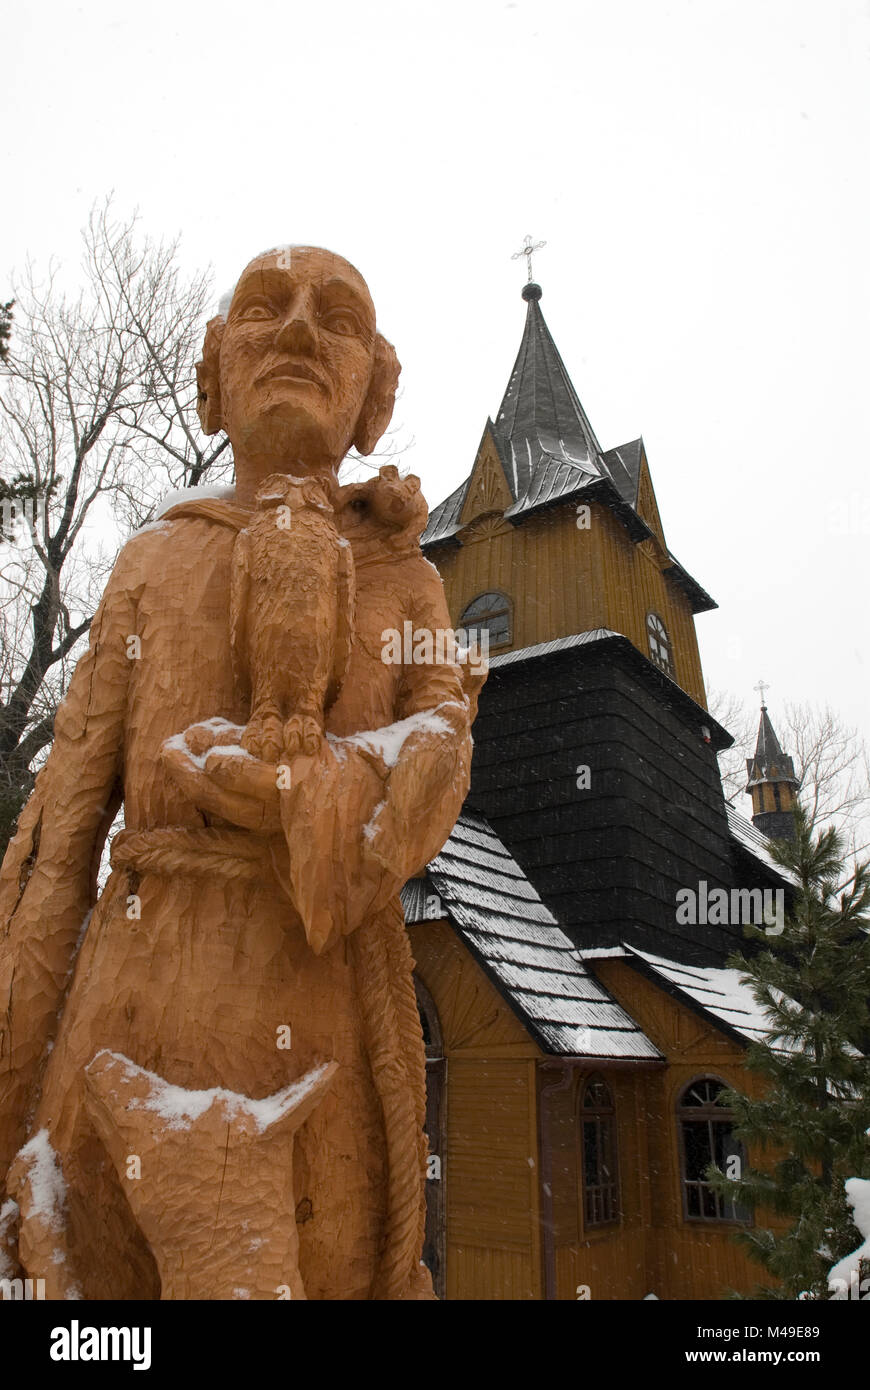 Traditional Wooden Church With Wooden Carved Statue Of St Francis Of